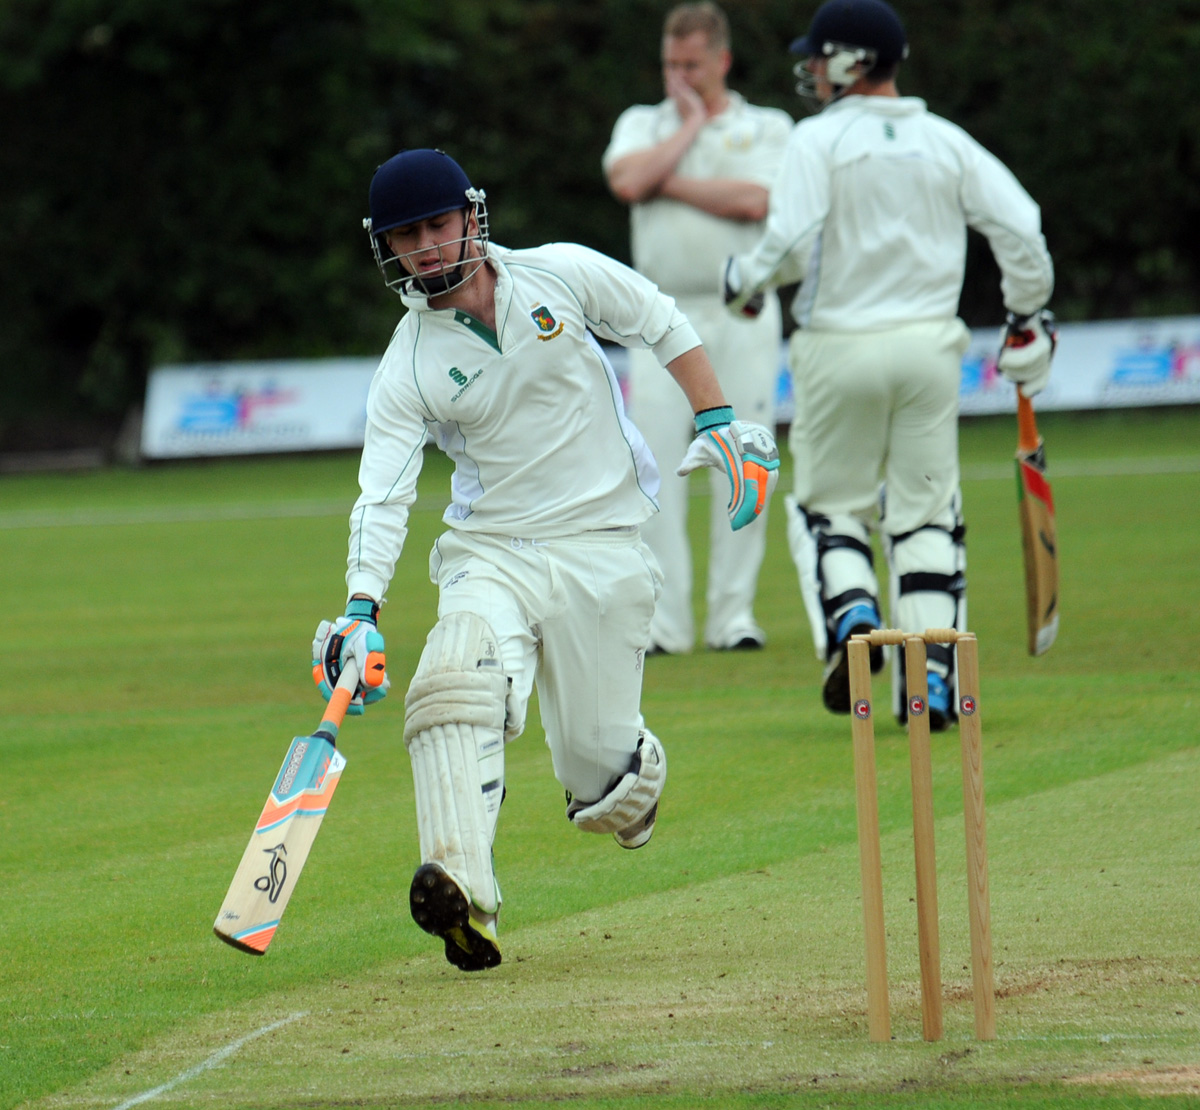 Henry Hughes fell just short of making a half-century for Toft in an eight-wicket defeat at Grappenhall on Saturday. Picture: DAVE GILLESPIE